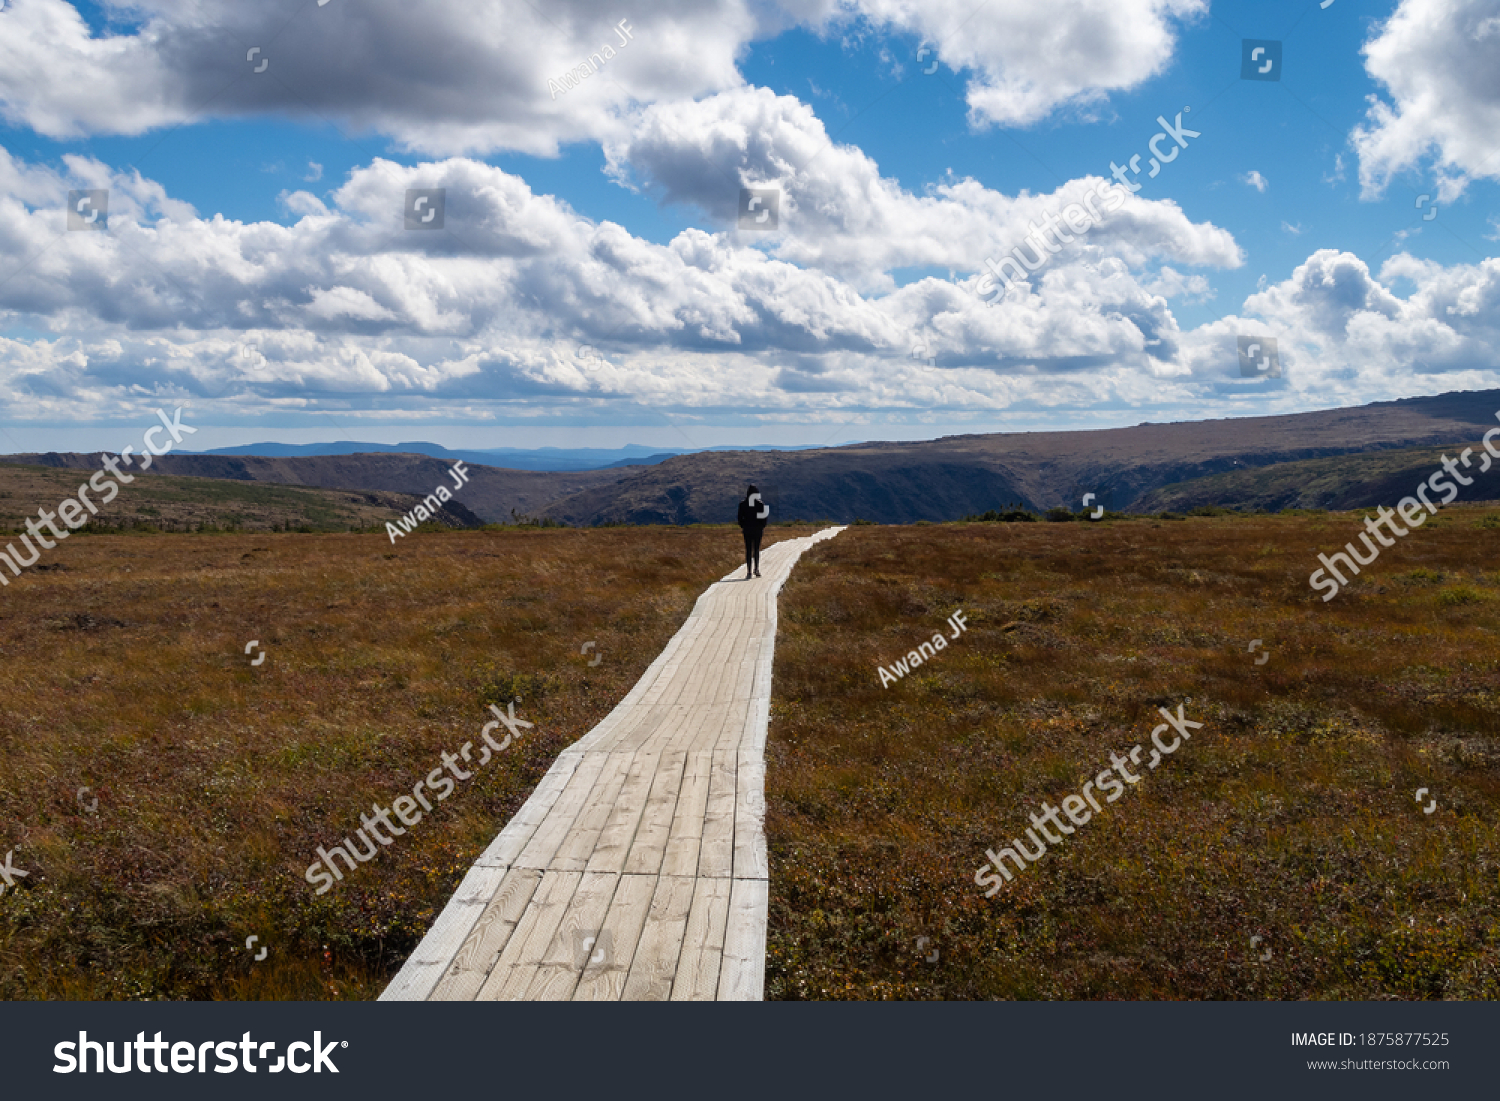 stock-photo-back-view-of-a-hiker-walking